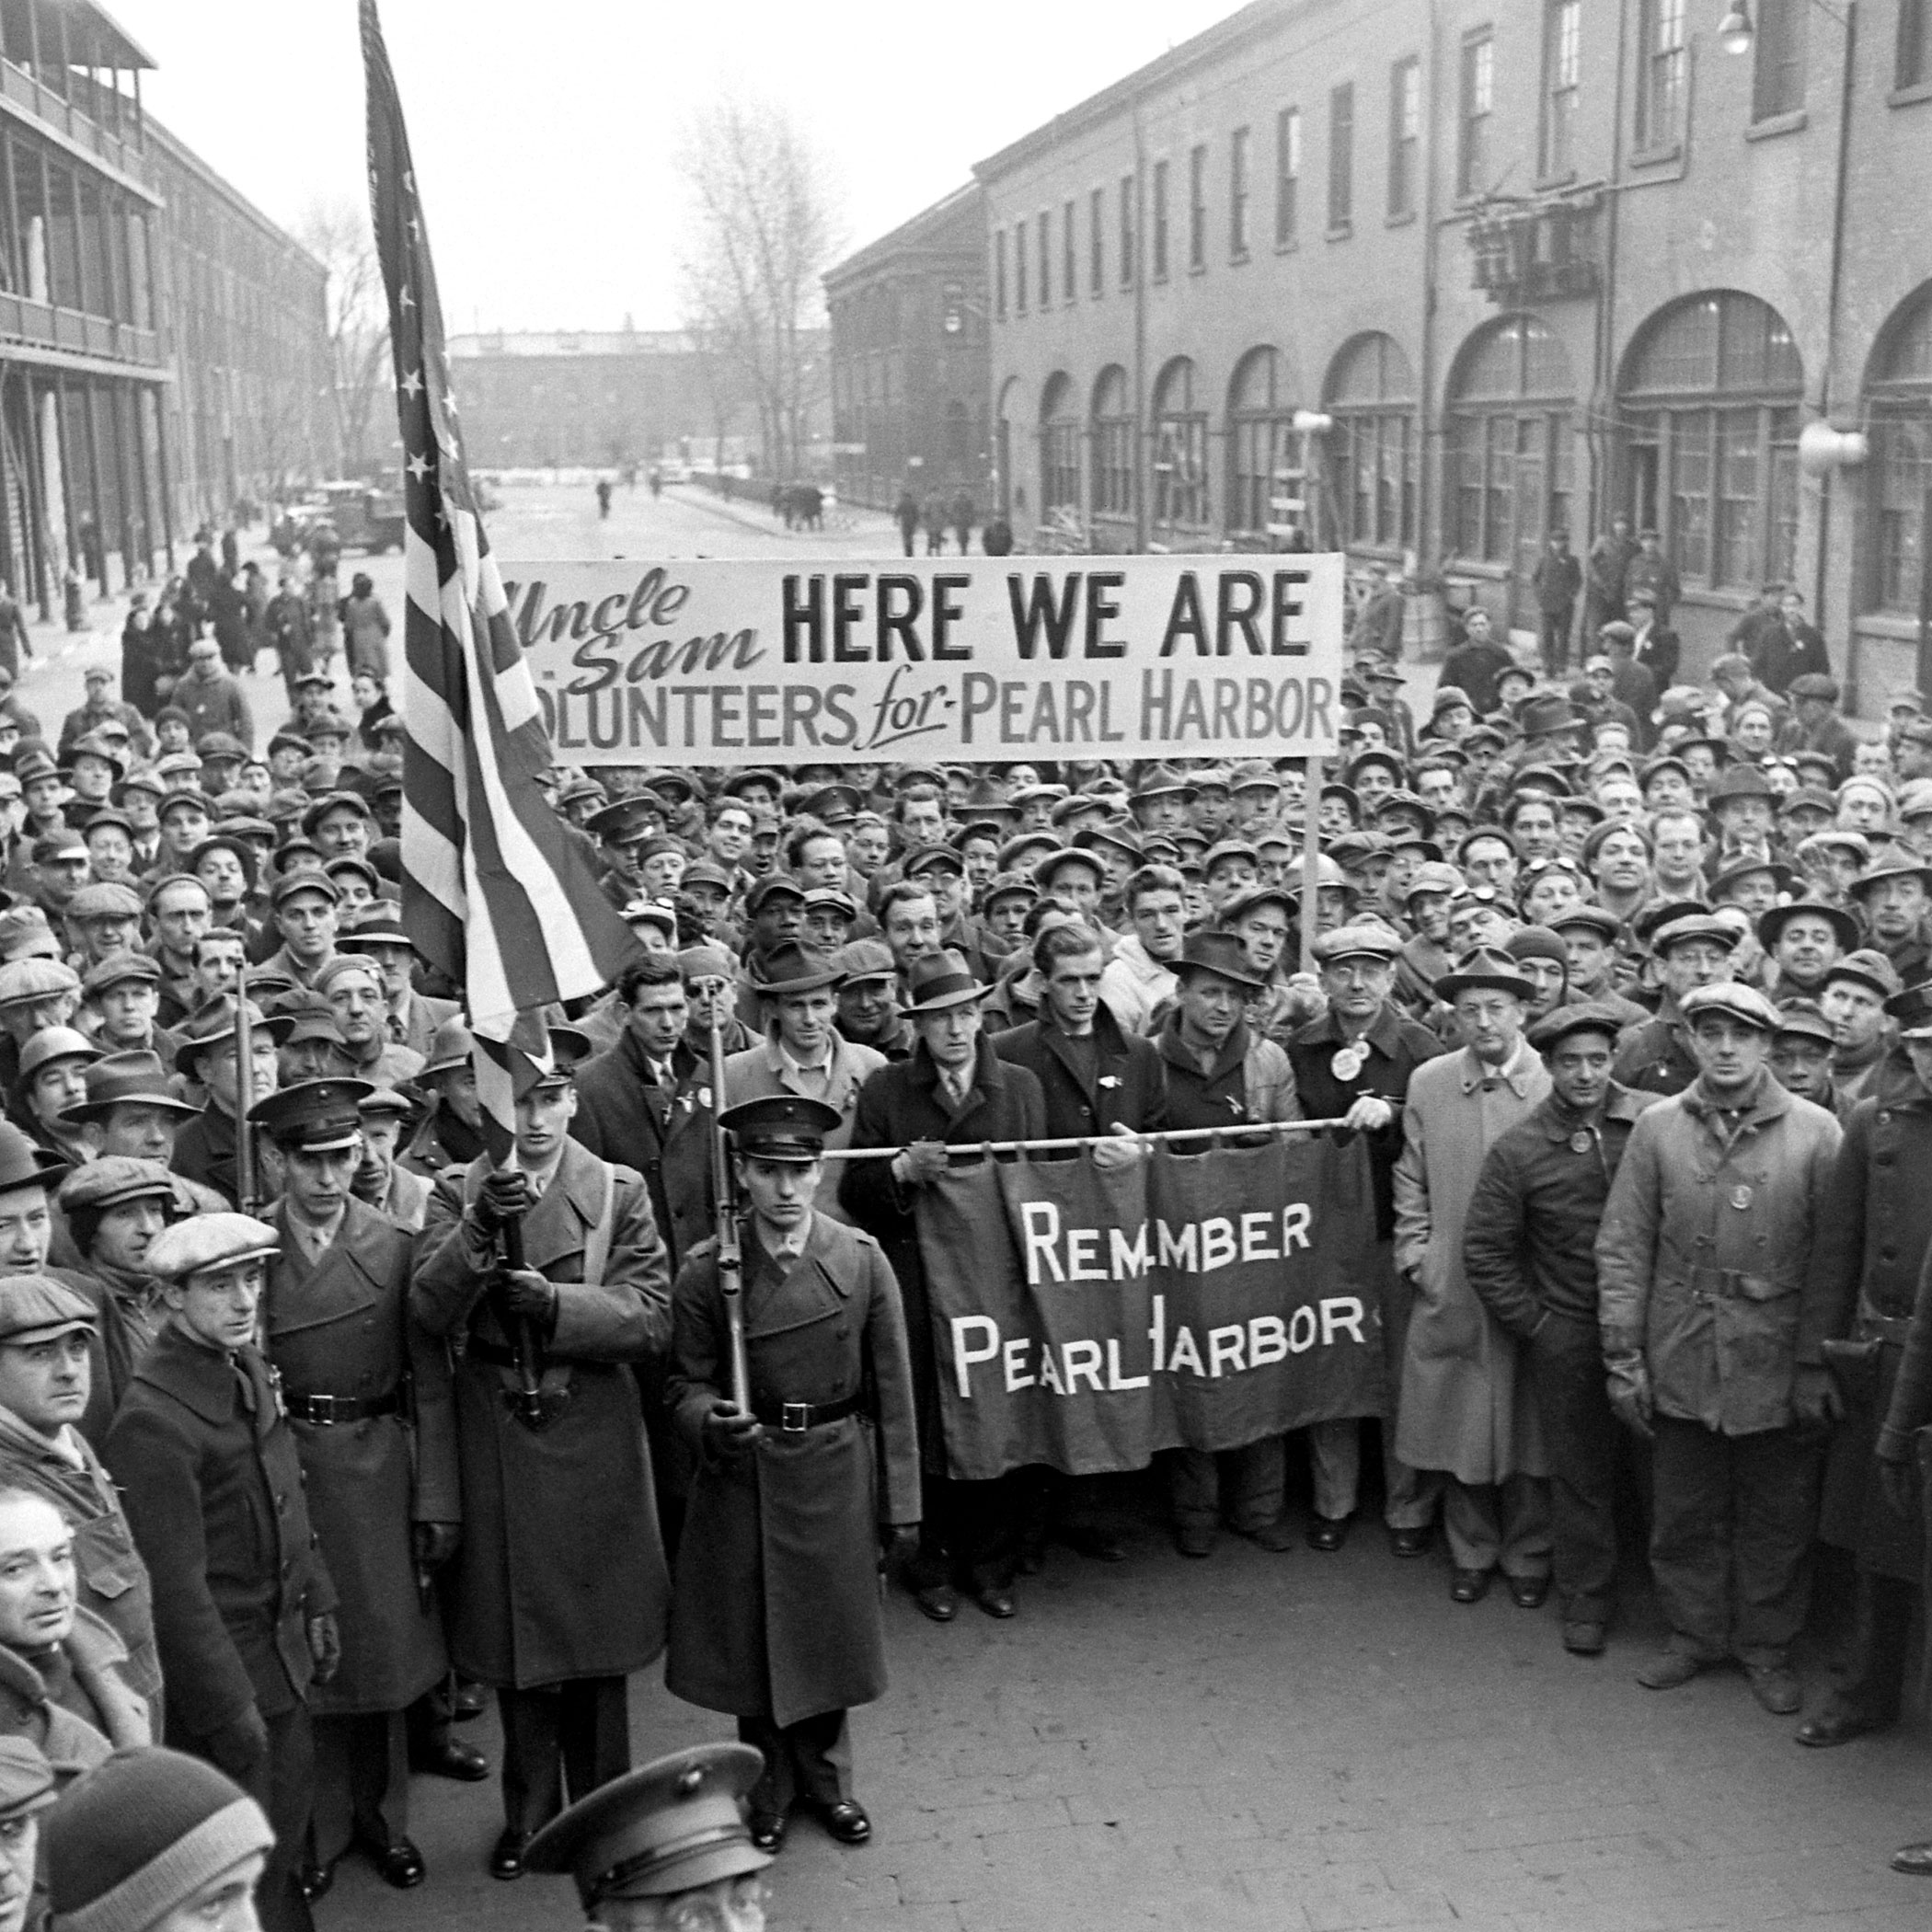 A rally at the Brooklyn Navy Yard, December 1941.